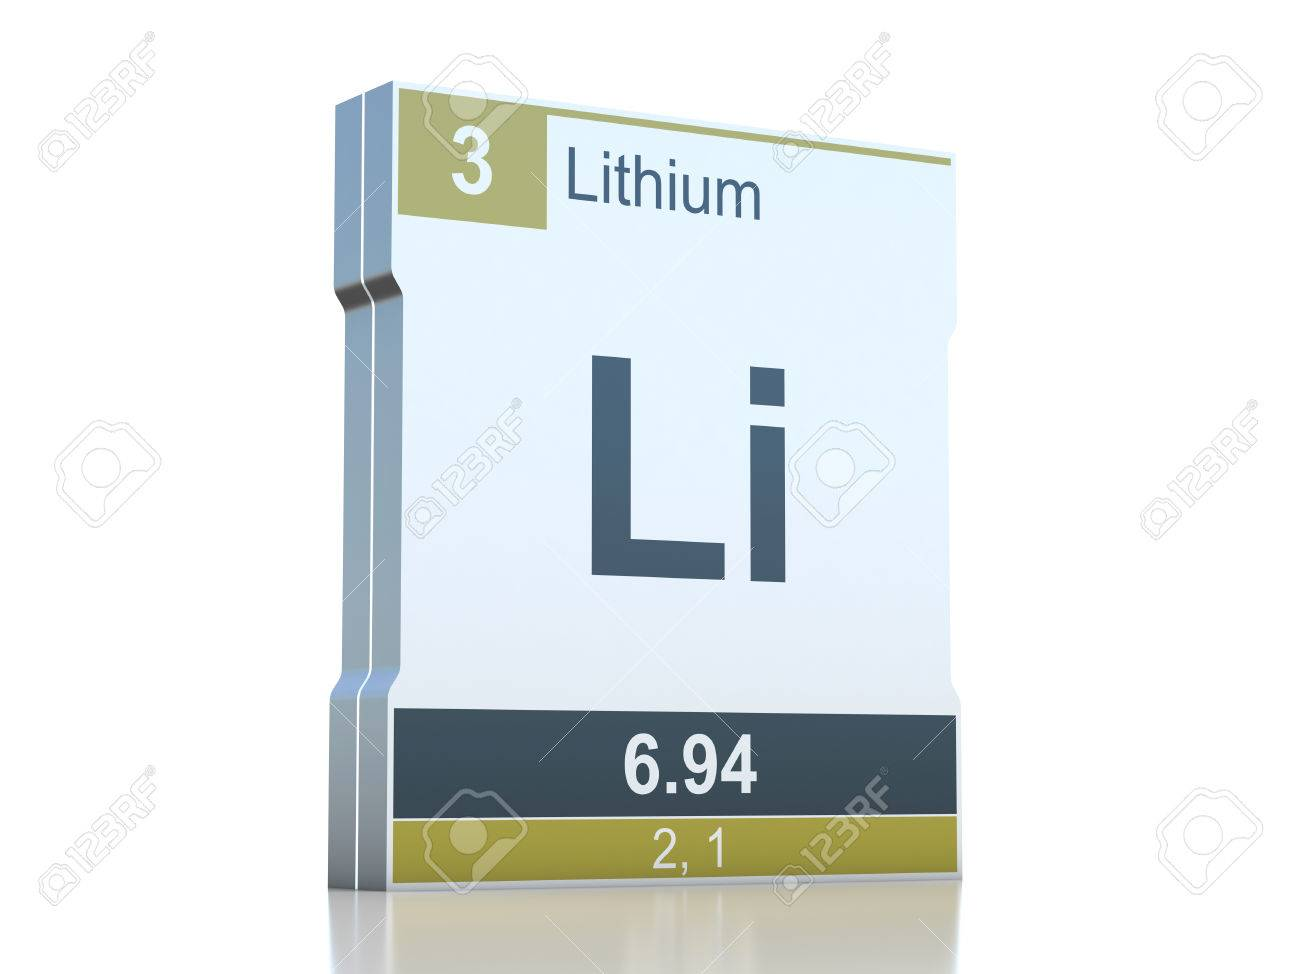 Lithium symbol element from the periodic table stock photo lithium symbol element from the periodic table stock photo 35945483 urtaz Choice Image